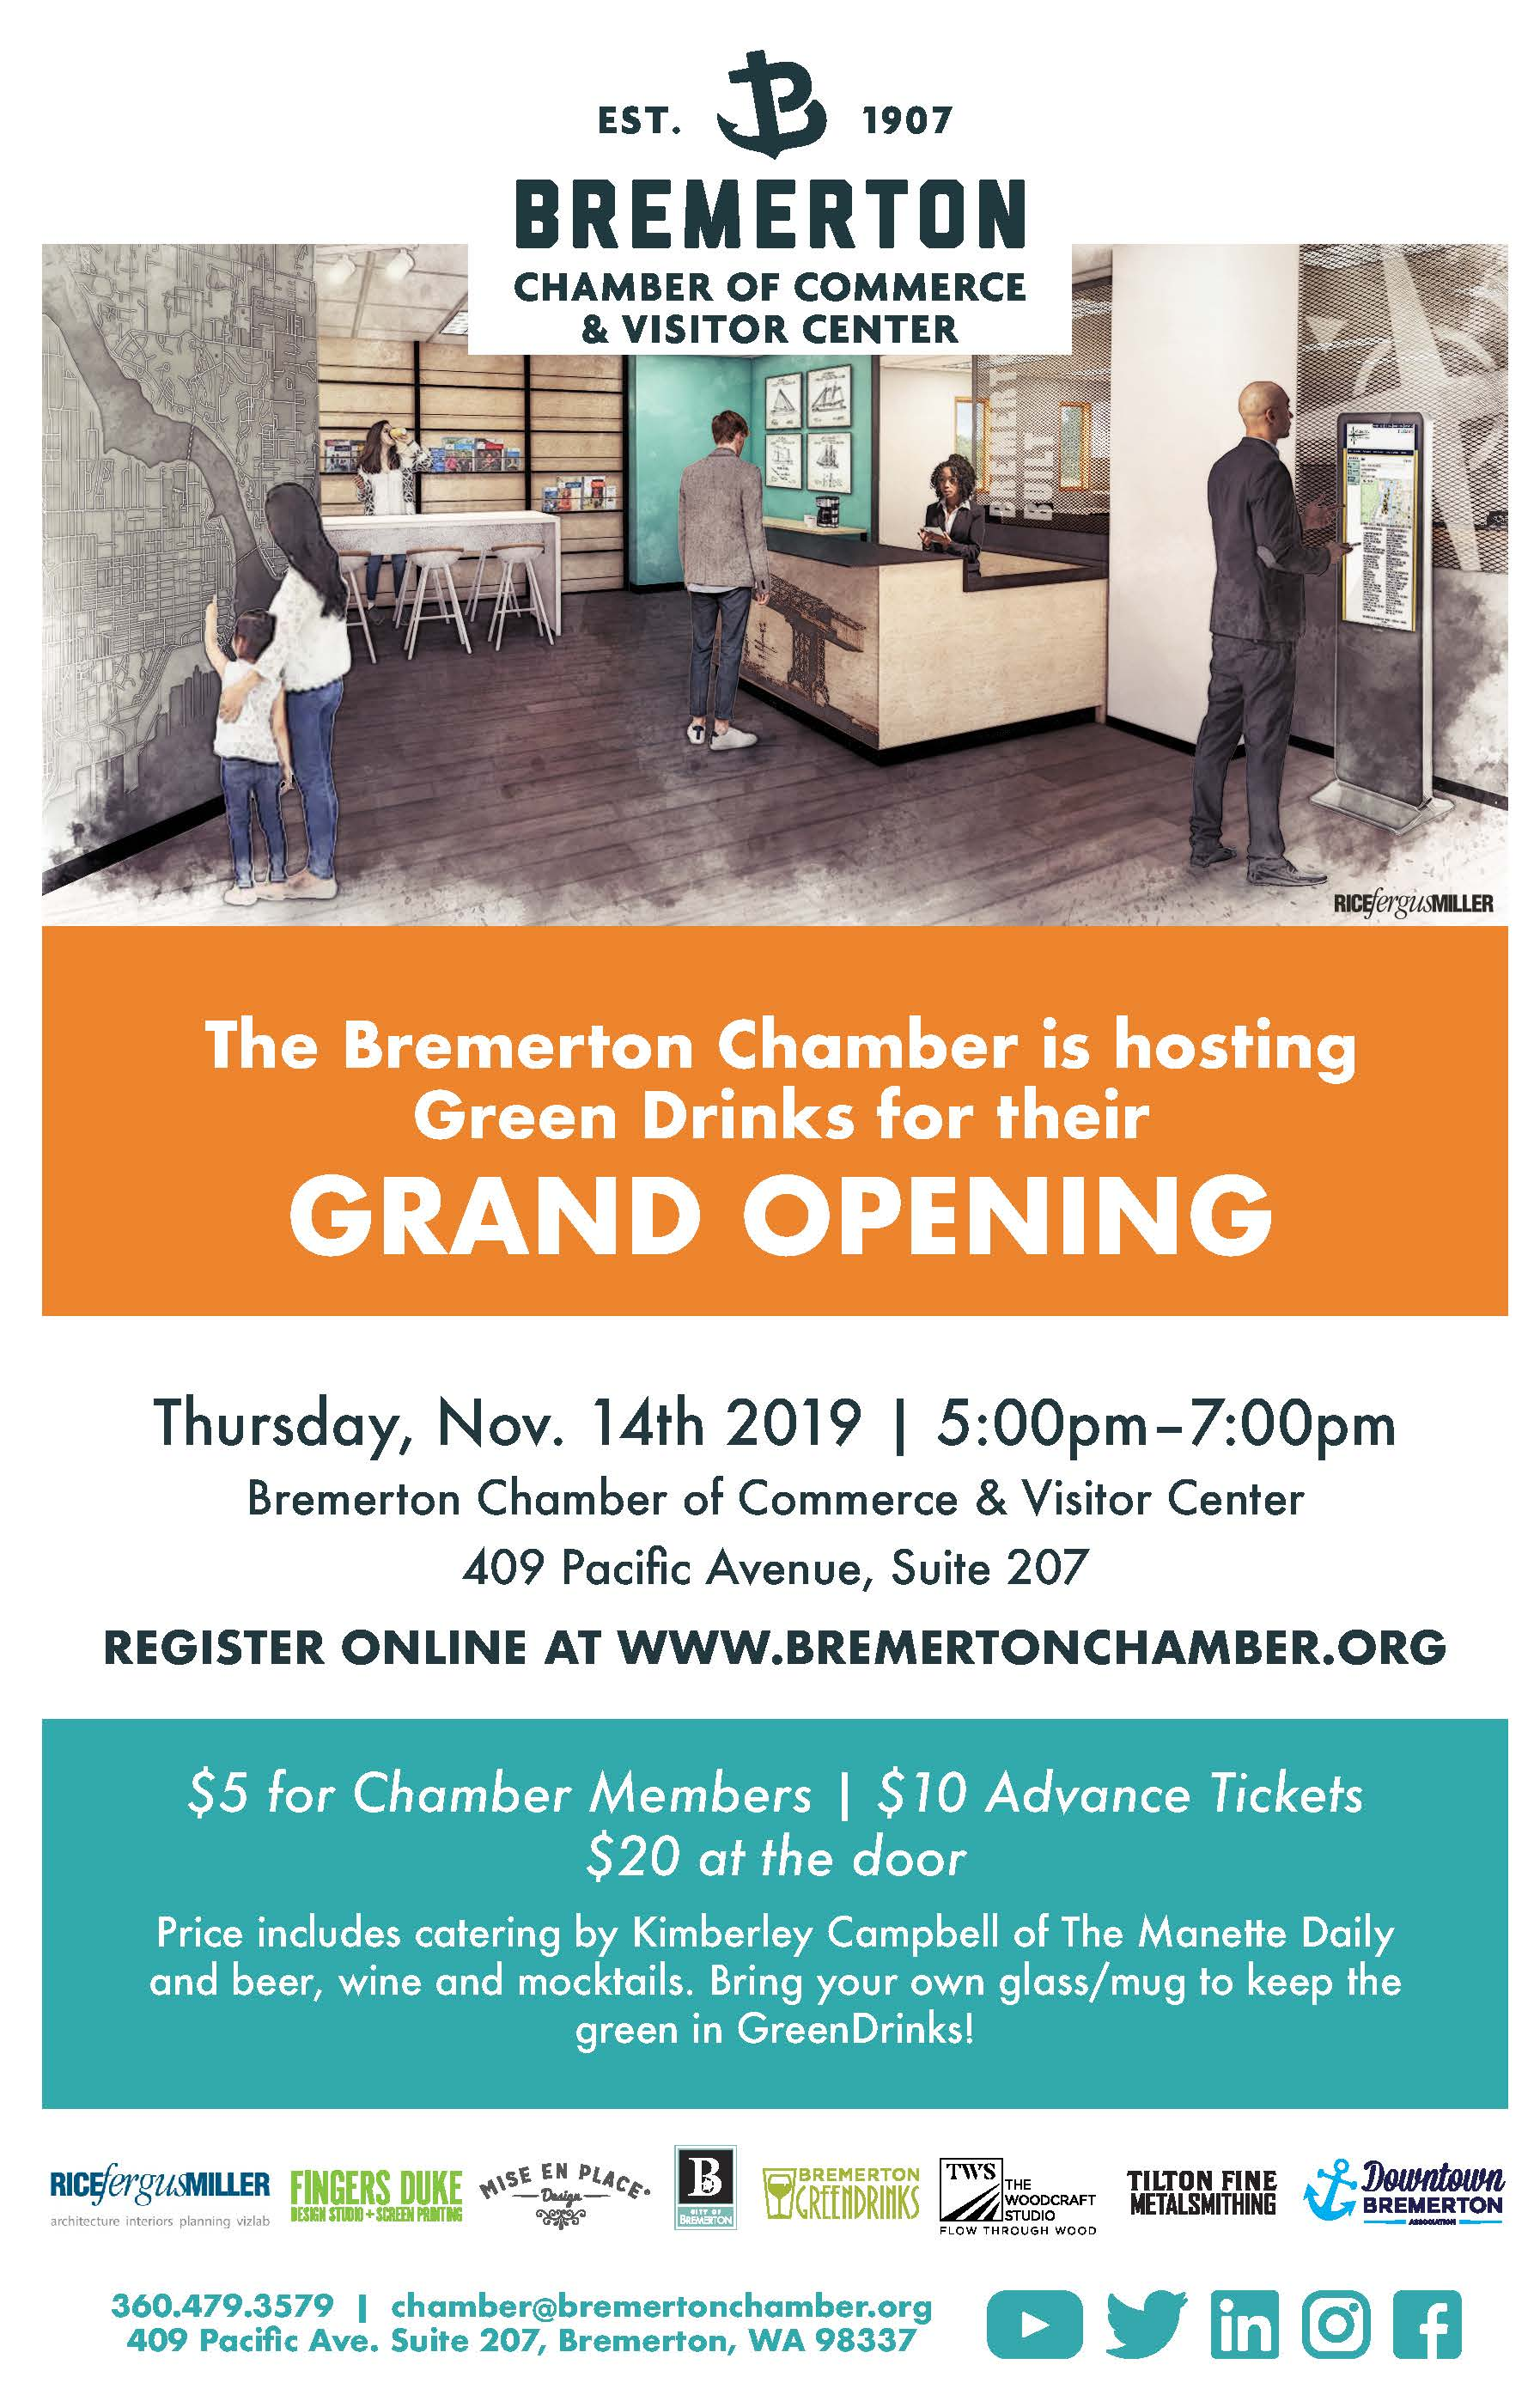 Bremerton Chamber of Commerce & Visitor Center Grand Opening